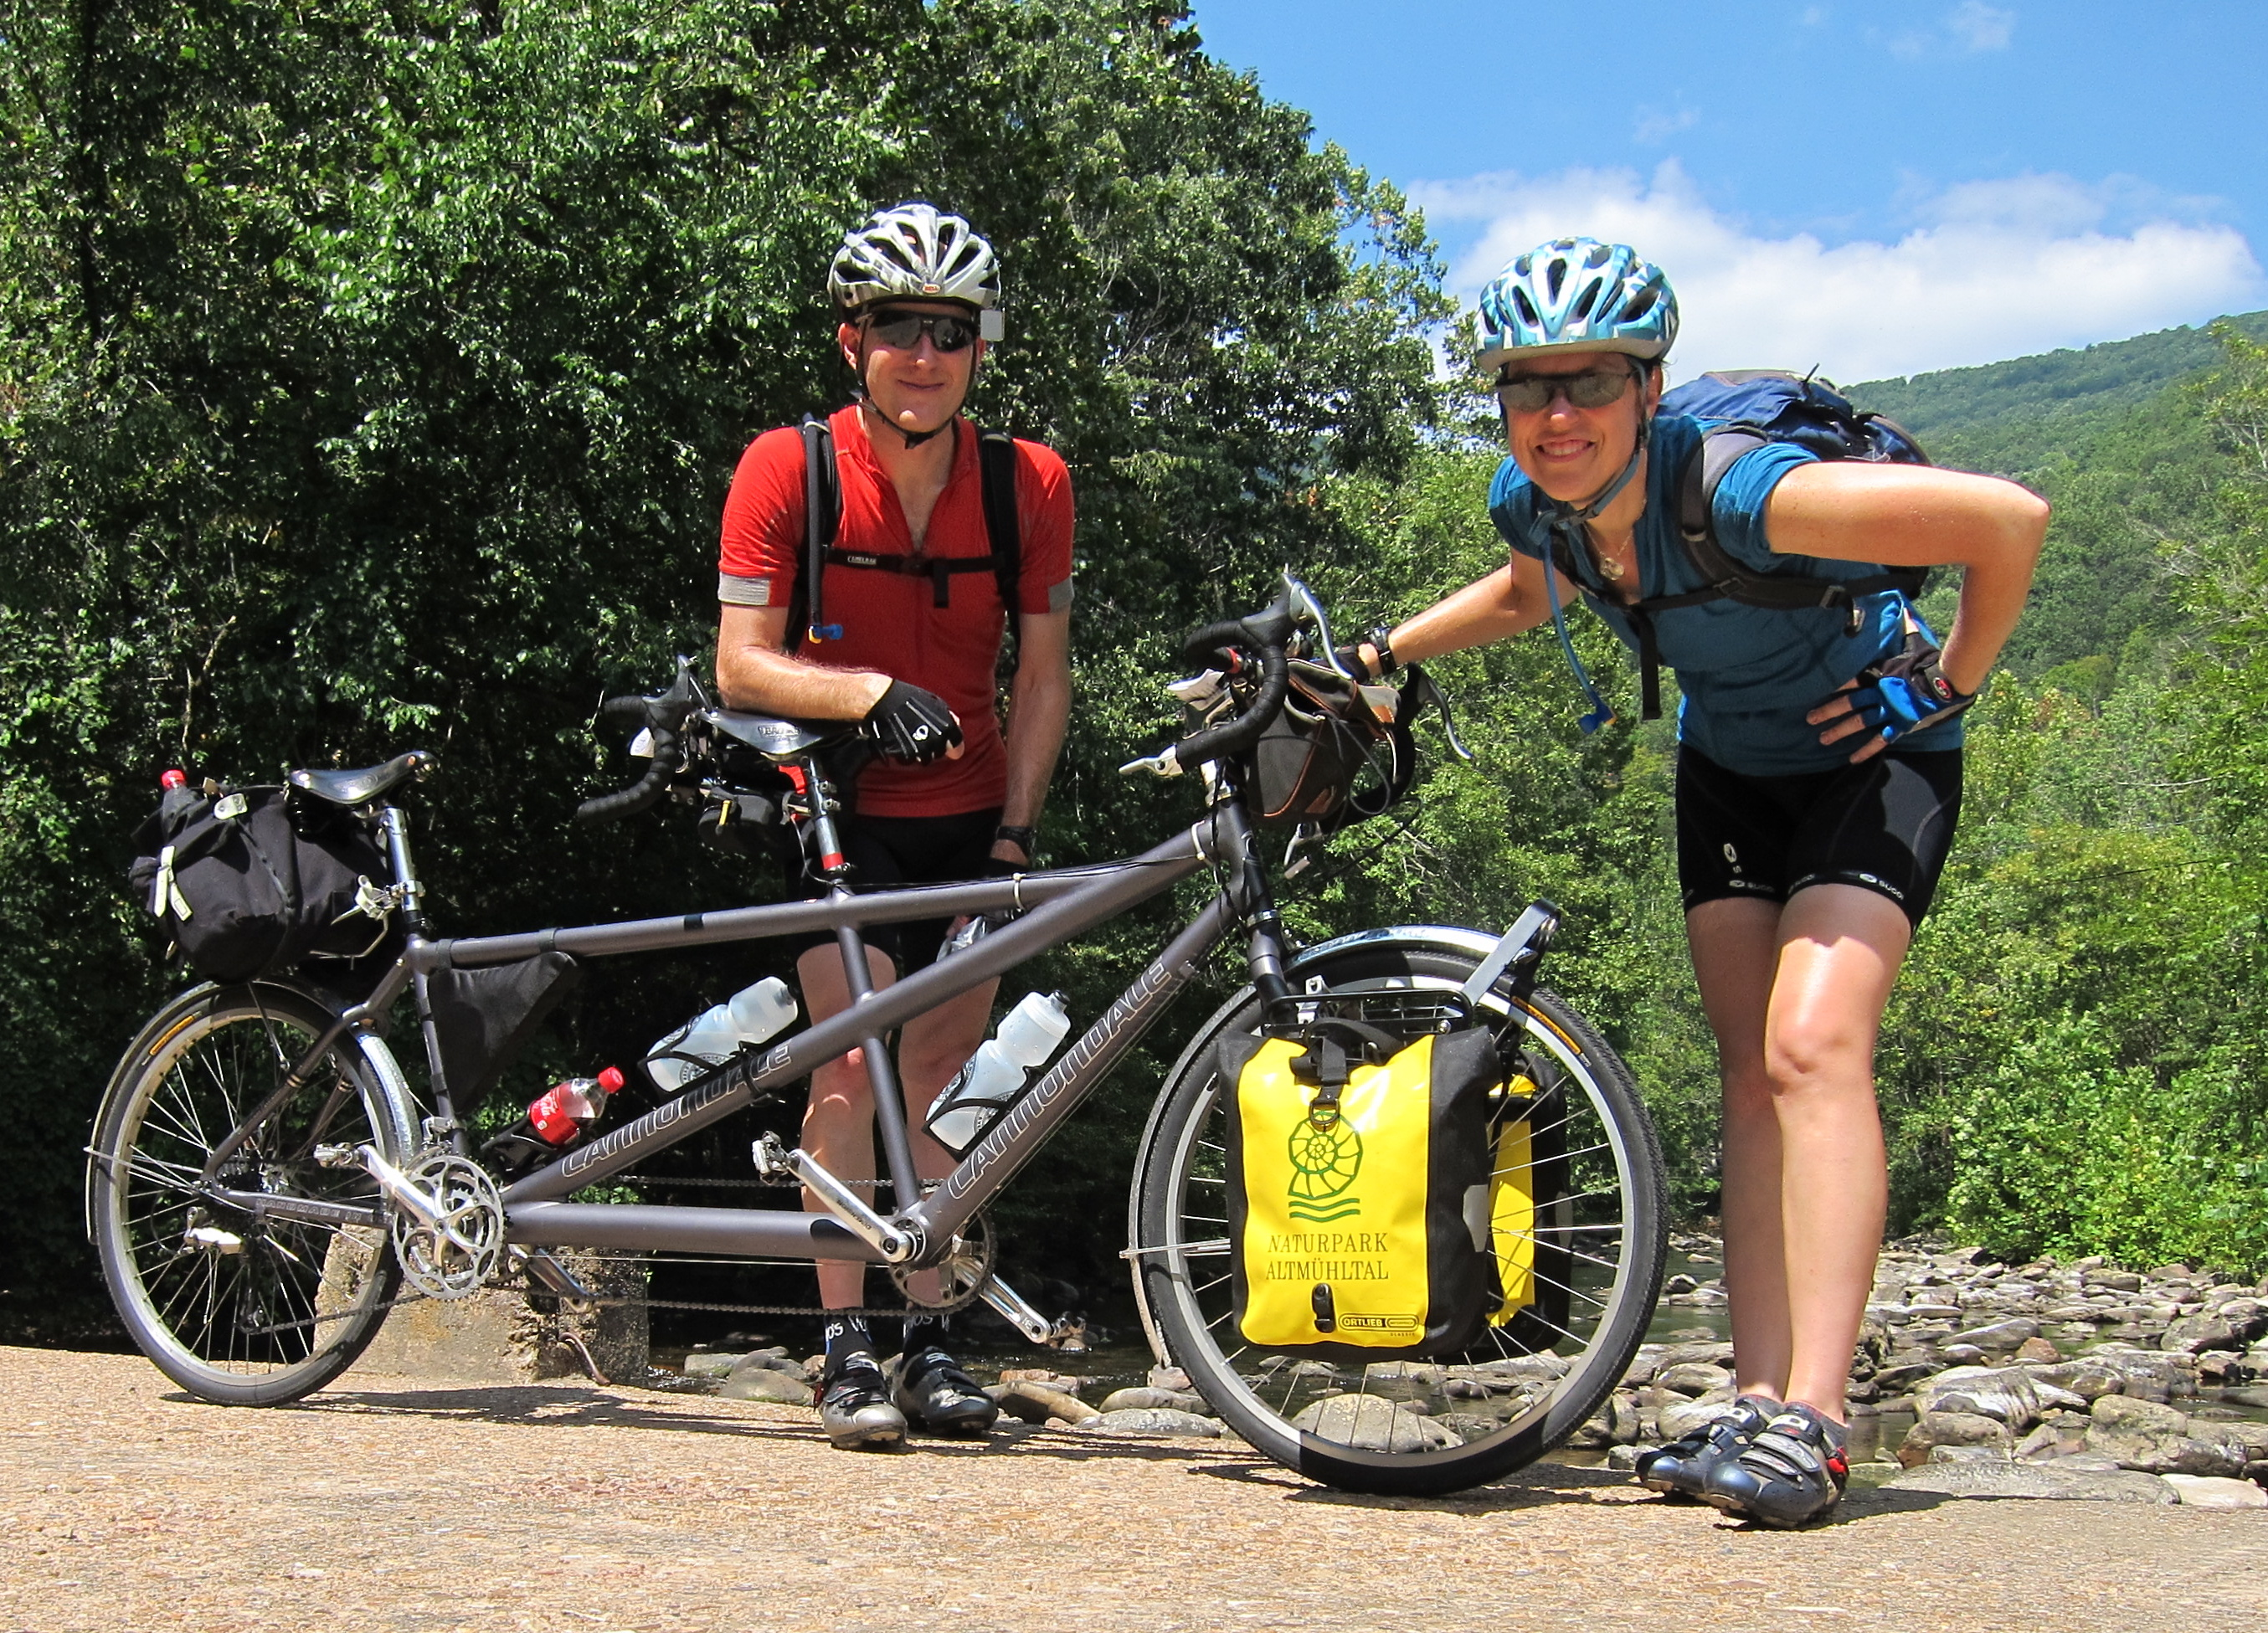 Southern Virginia Tandem Bike Tour Lessons Learned and ...